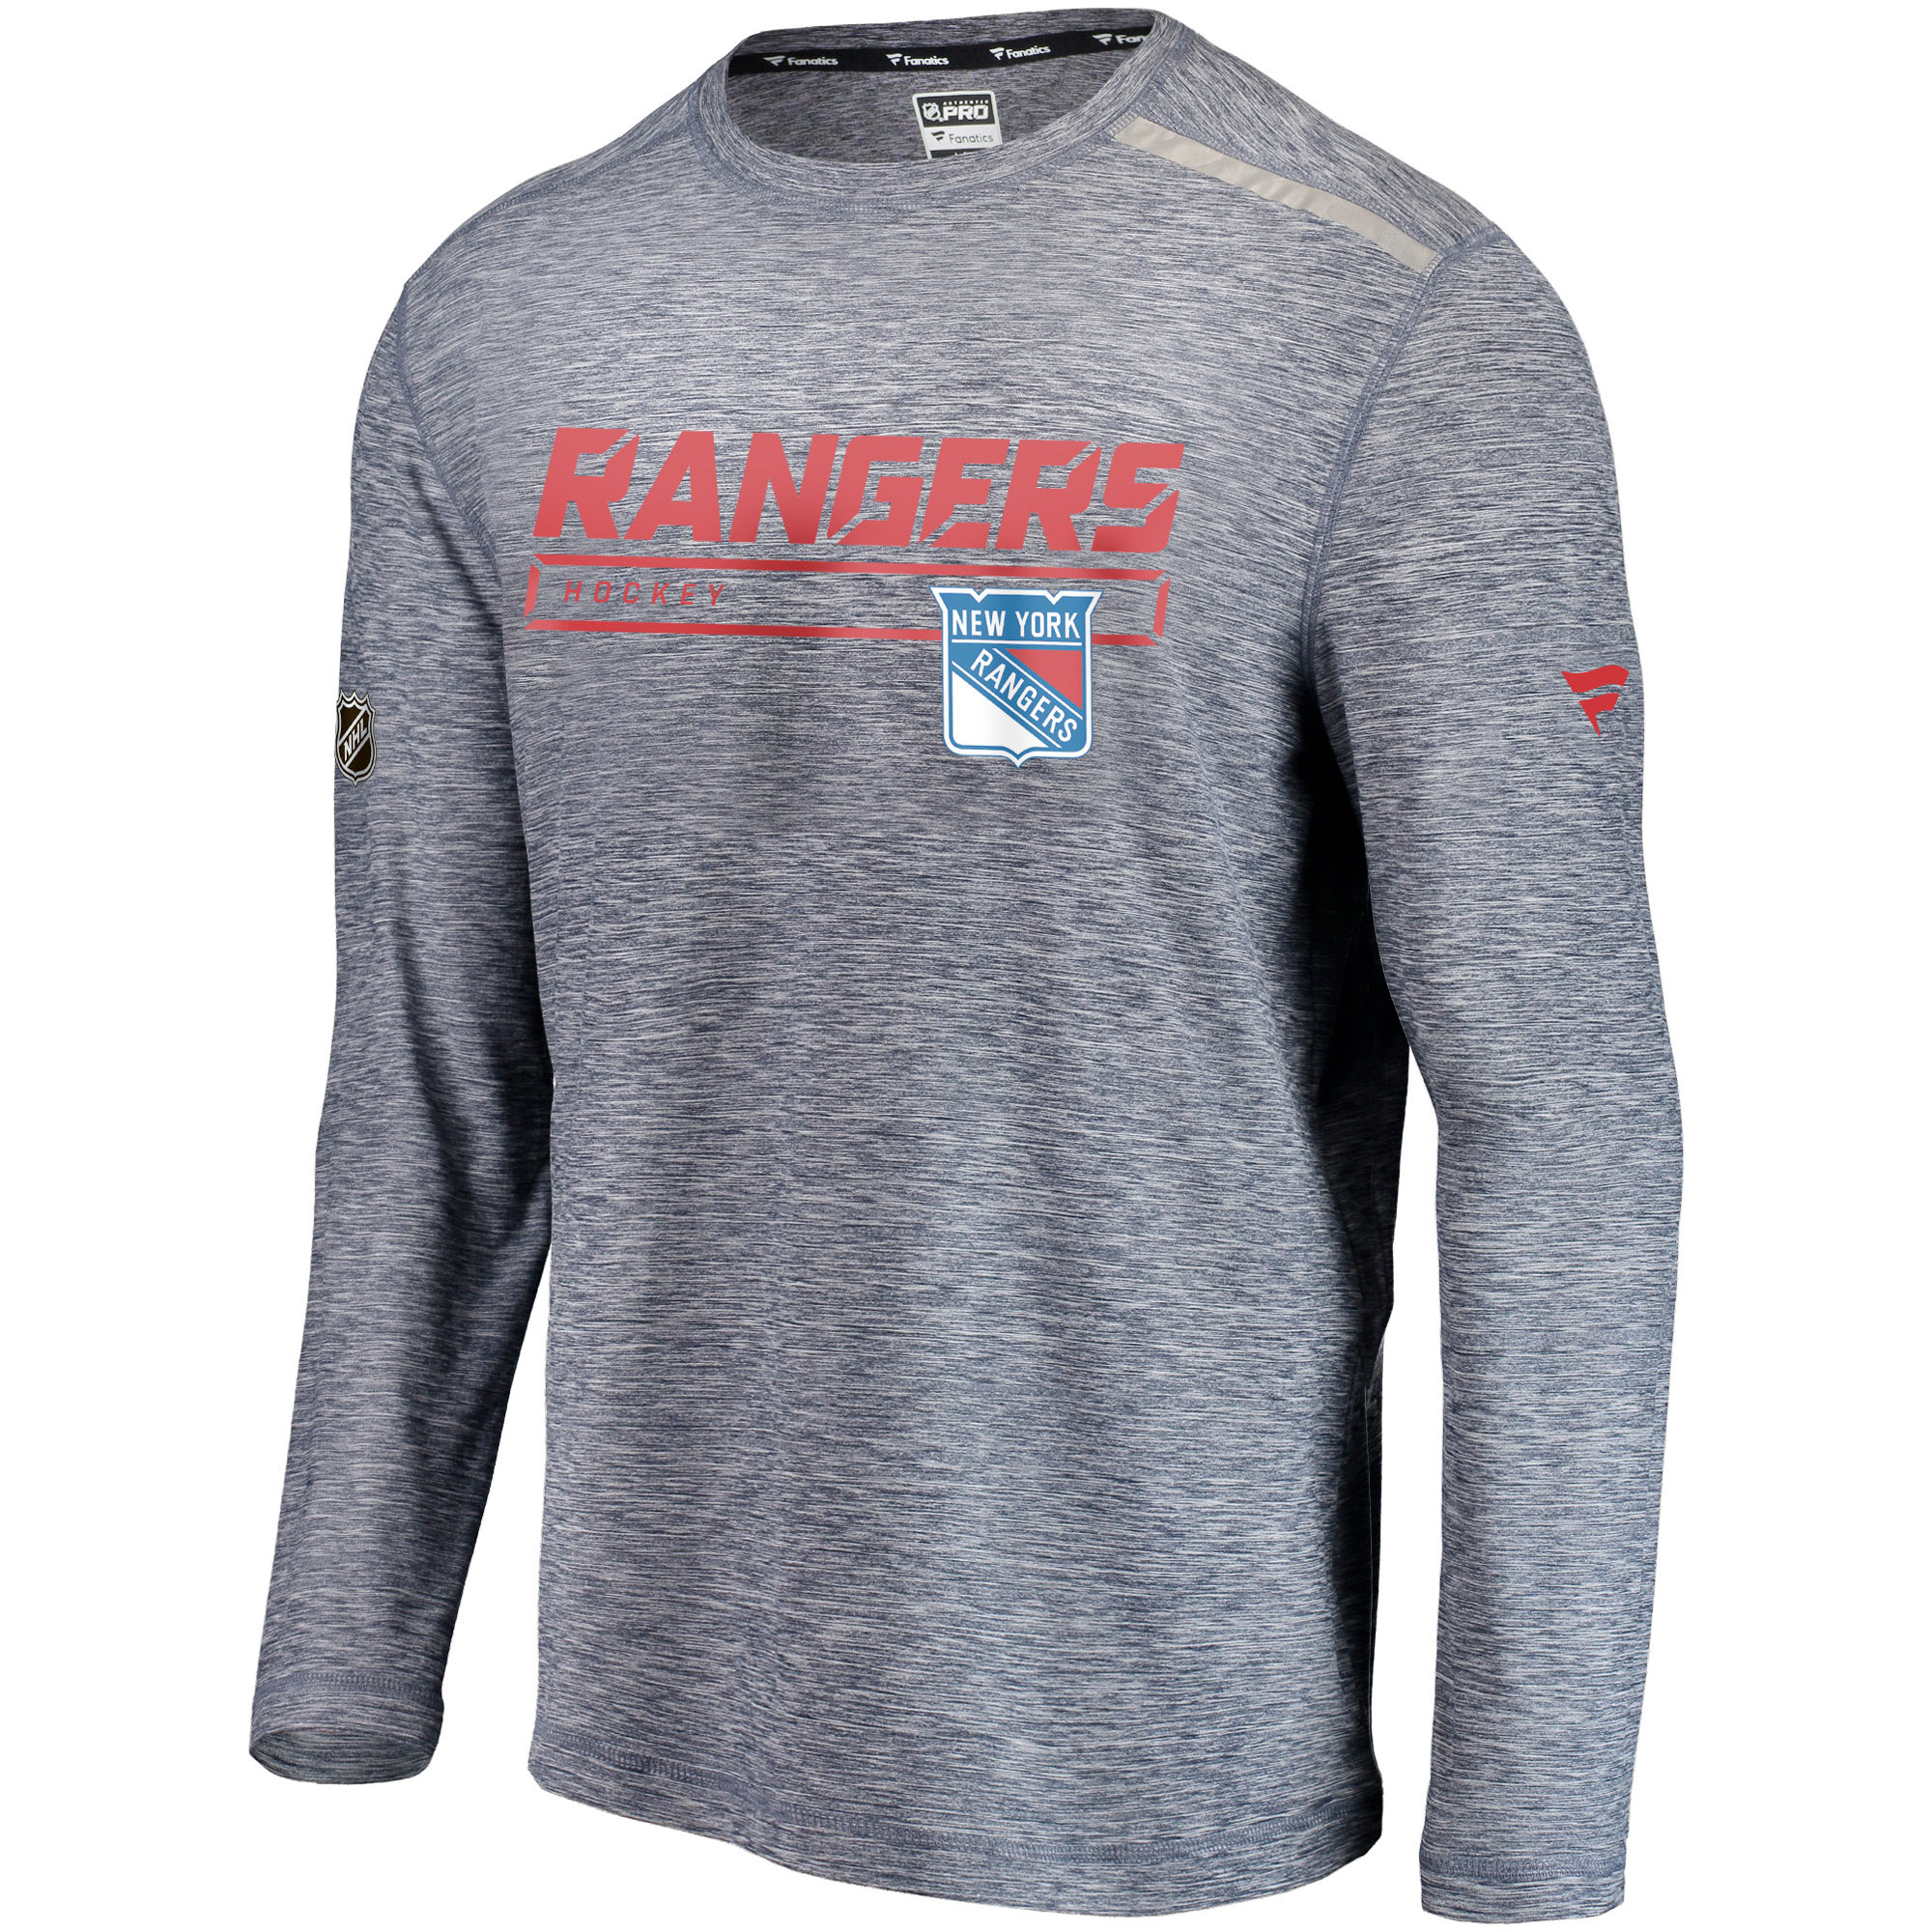 369fdbe219e New York Rangers T Shirt Grey – EDGE Engineering and Consulting Limited